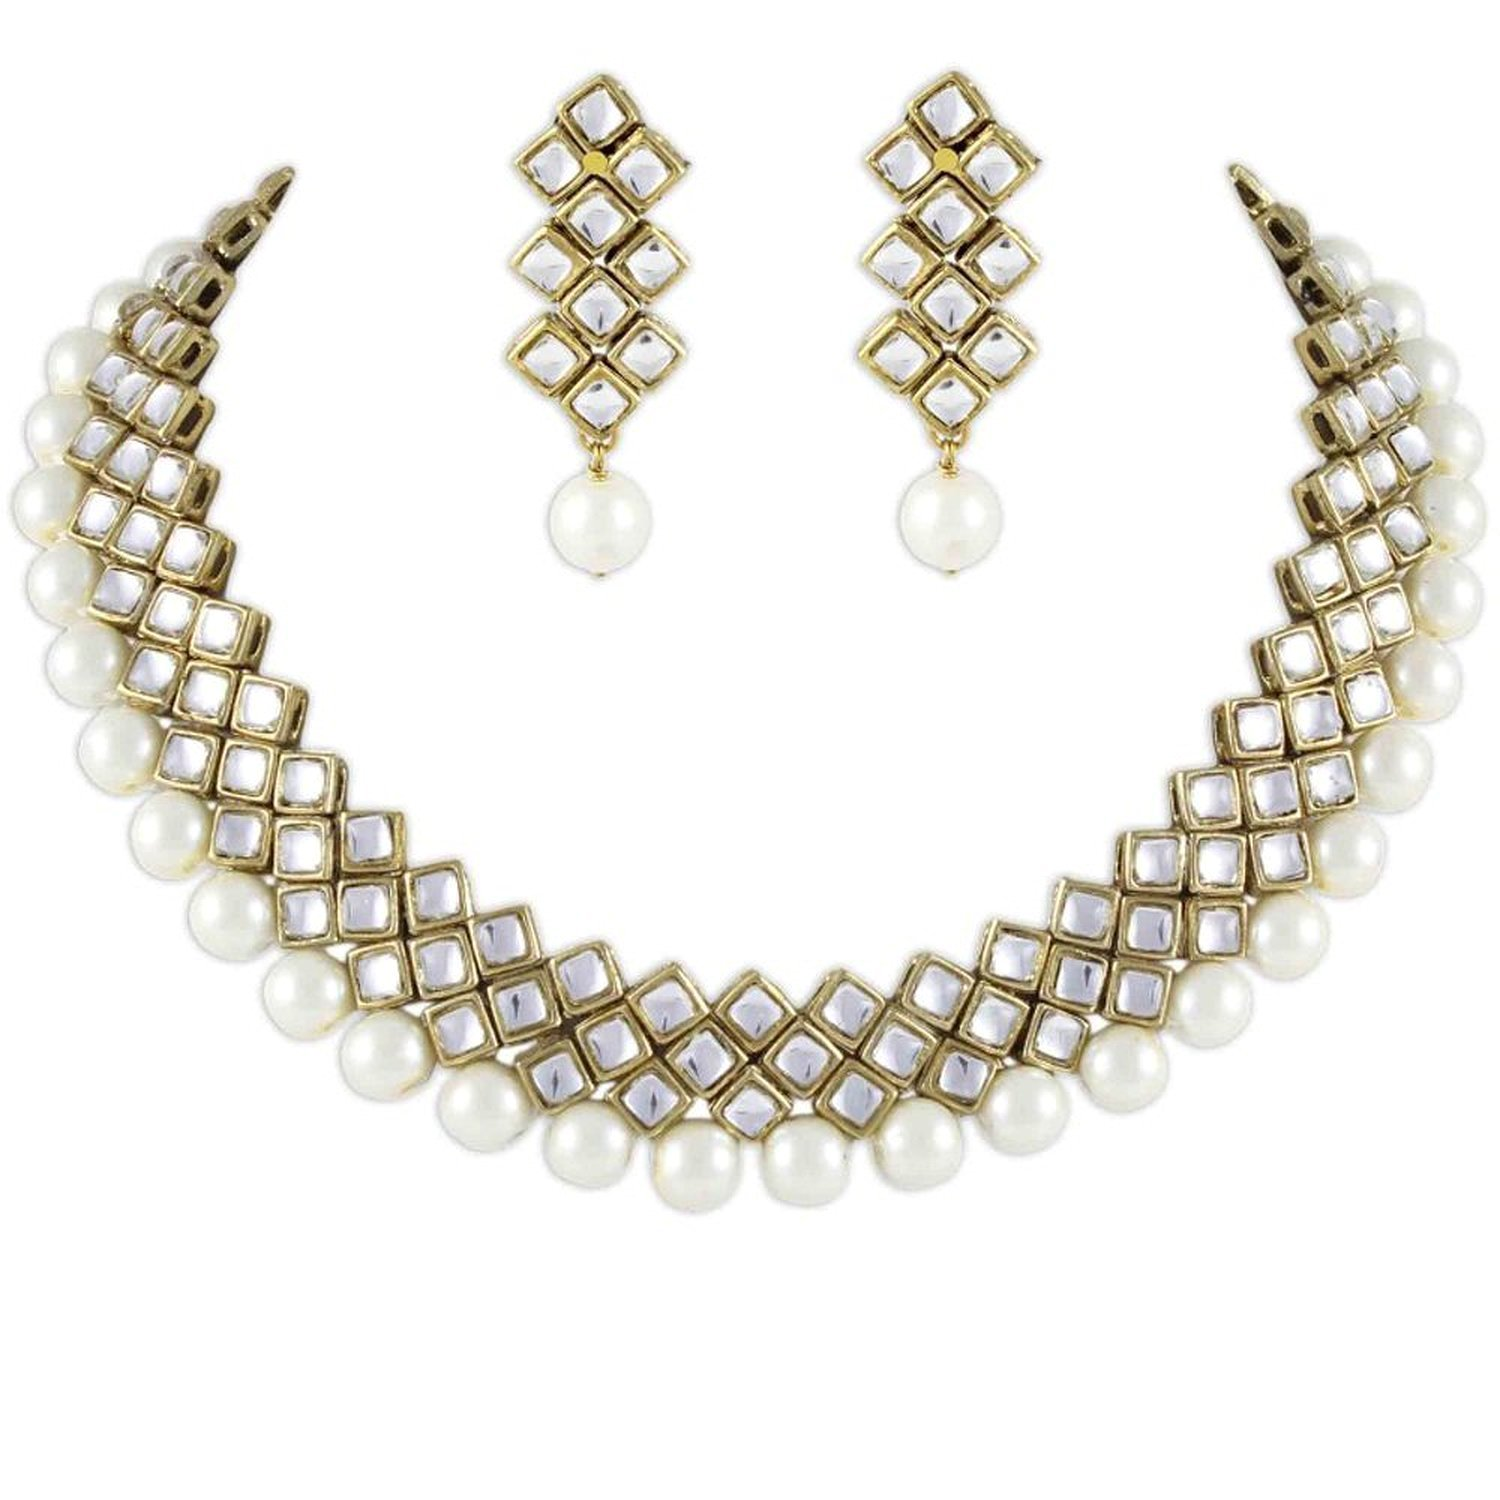 Shining Diva Latest Kundan Choker Traditional Necklace Jewellery Set for Women product image